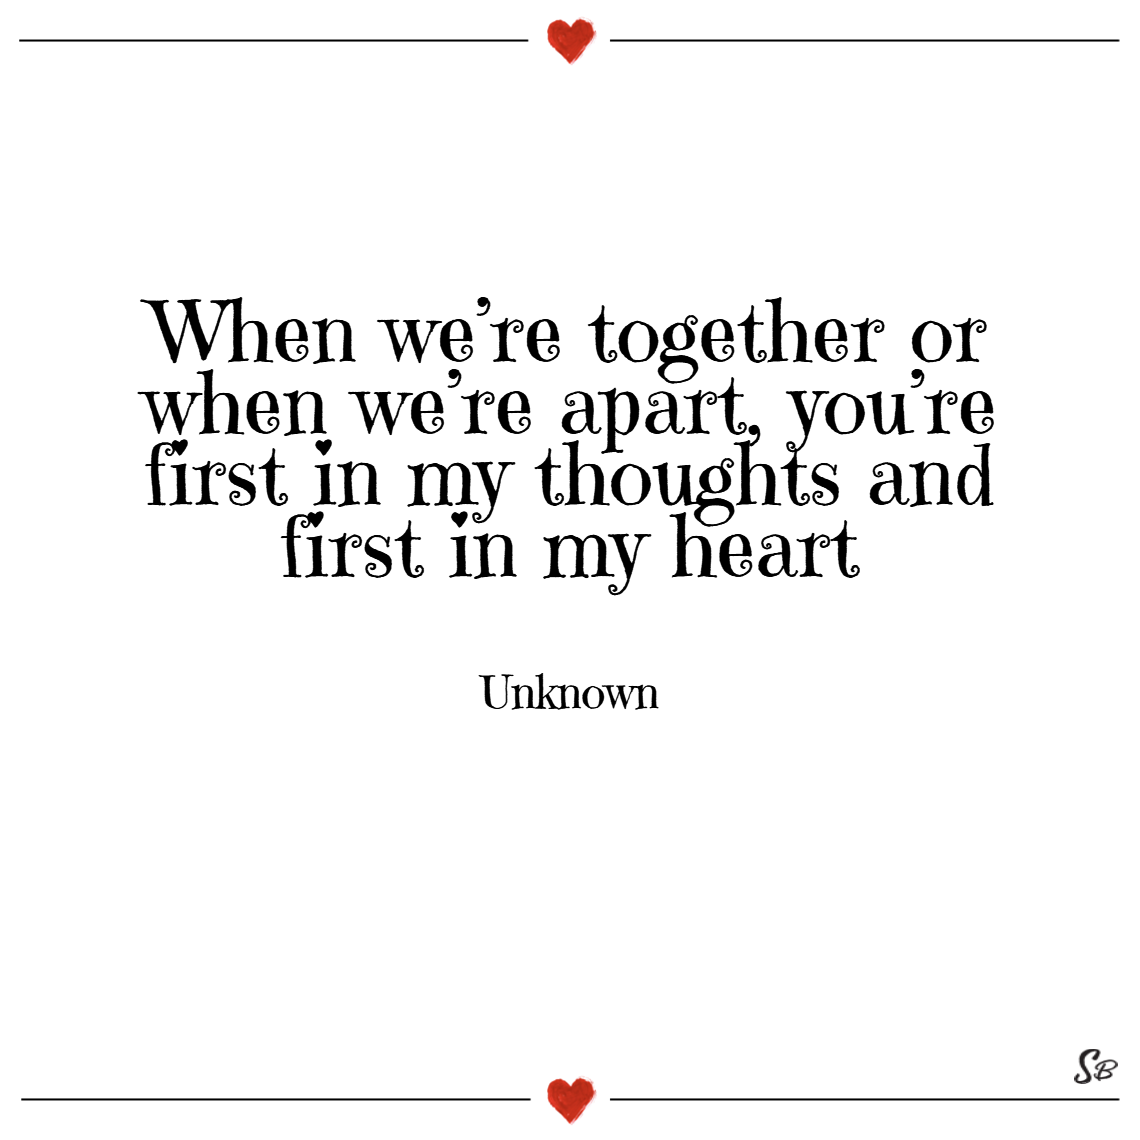 When we're together or when we're apart, you're first in my thoughts and first in my heart. – unknown thinking of you quotes